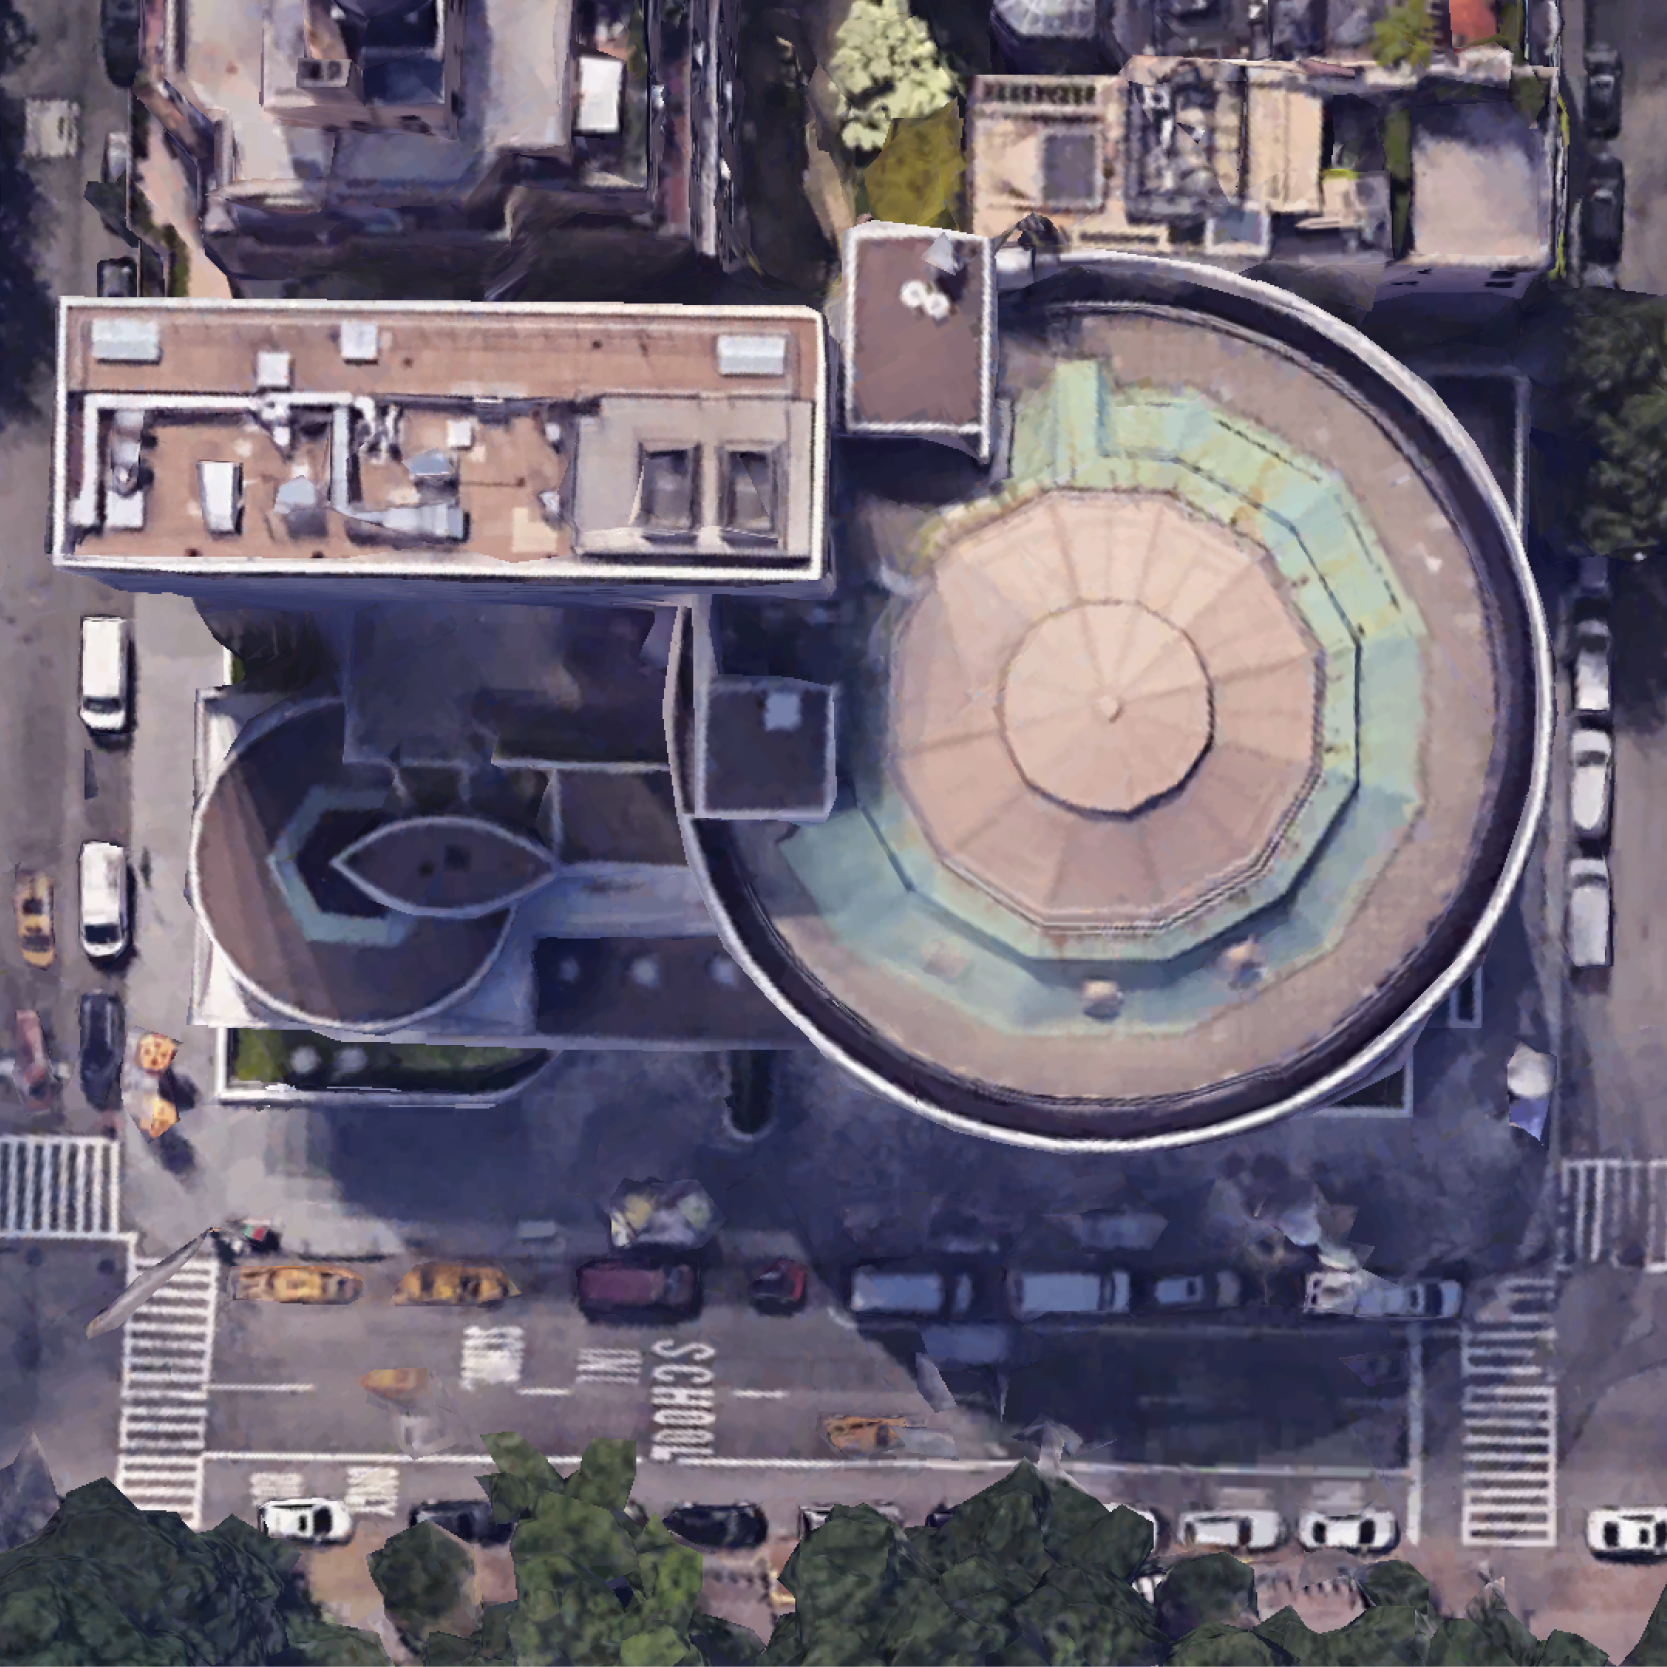 MV_Guggenheim_Abstraction_Aerial Photo.png